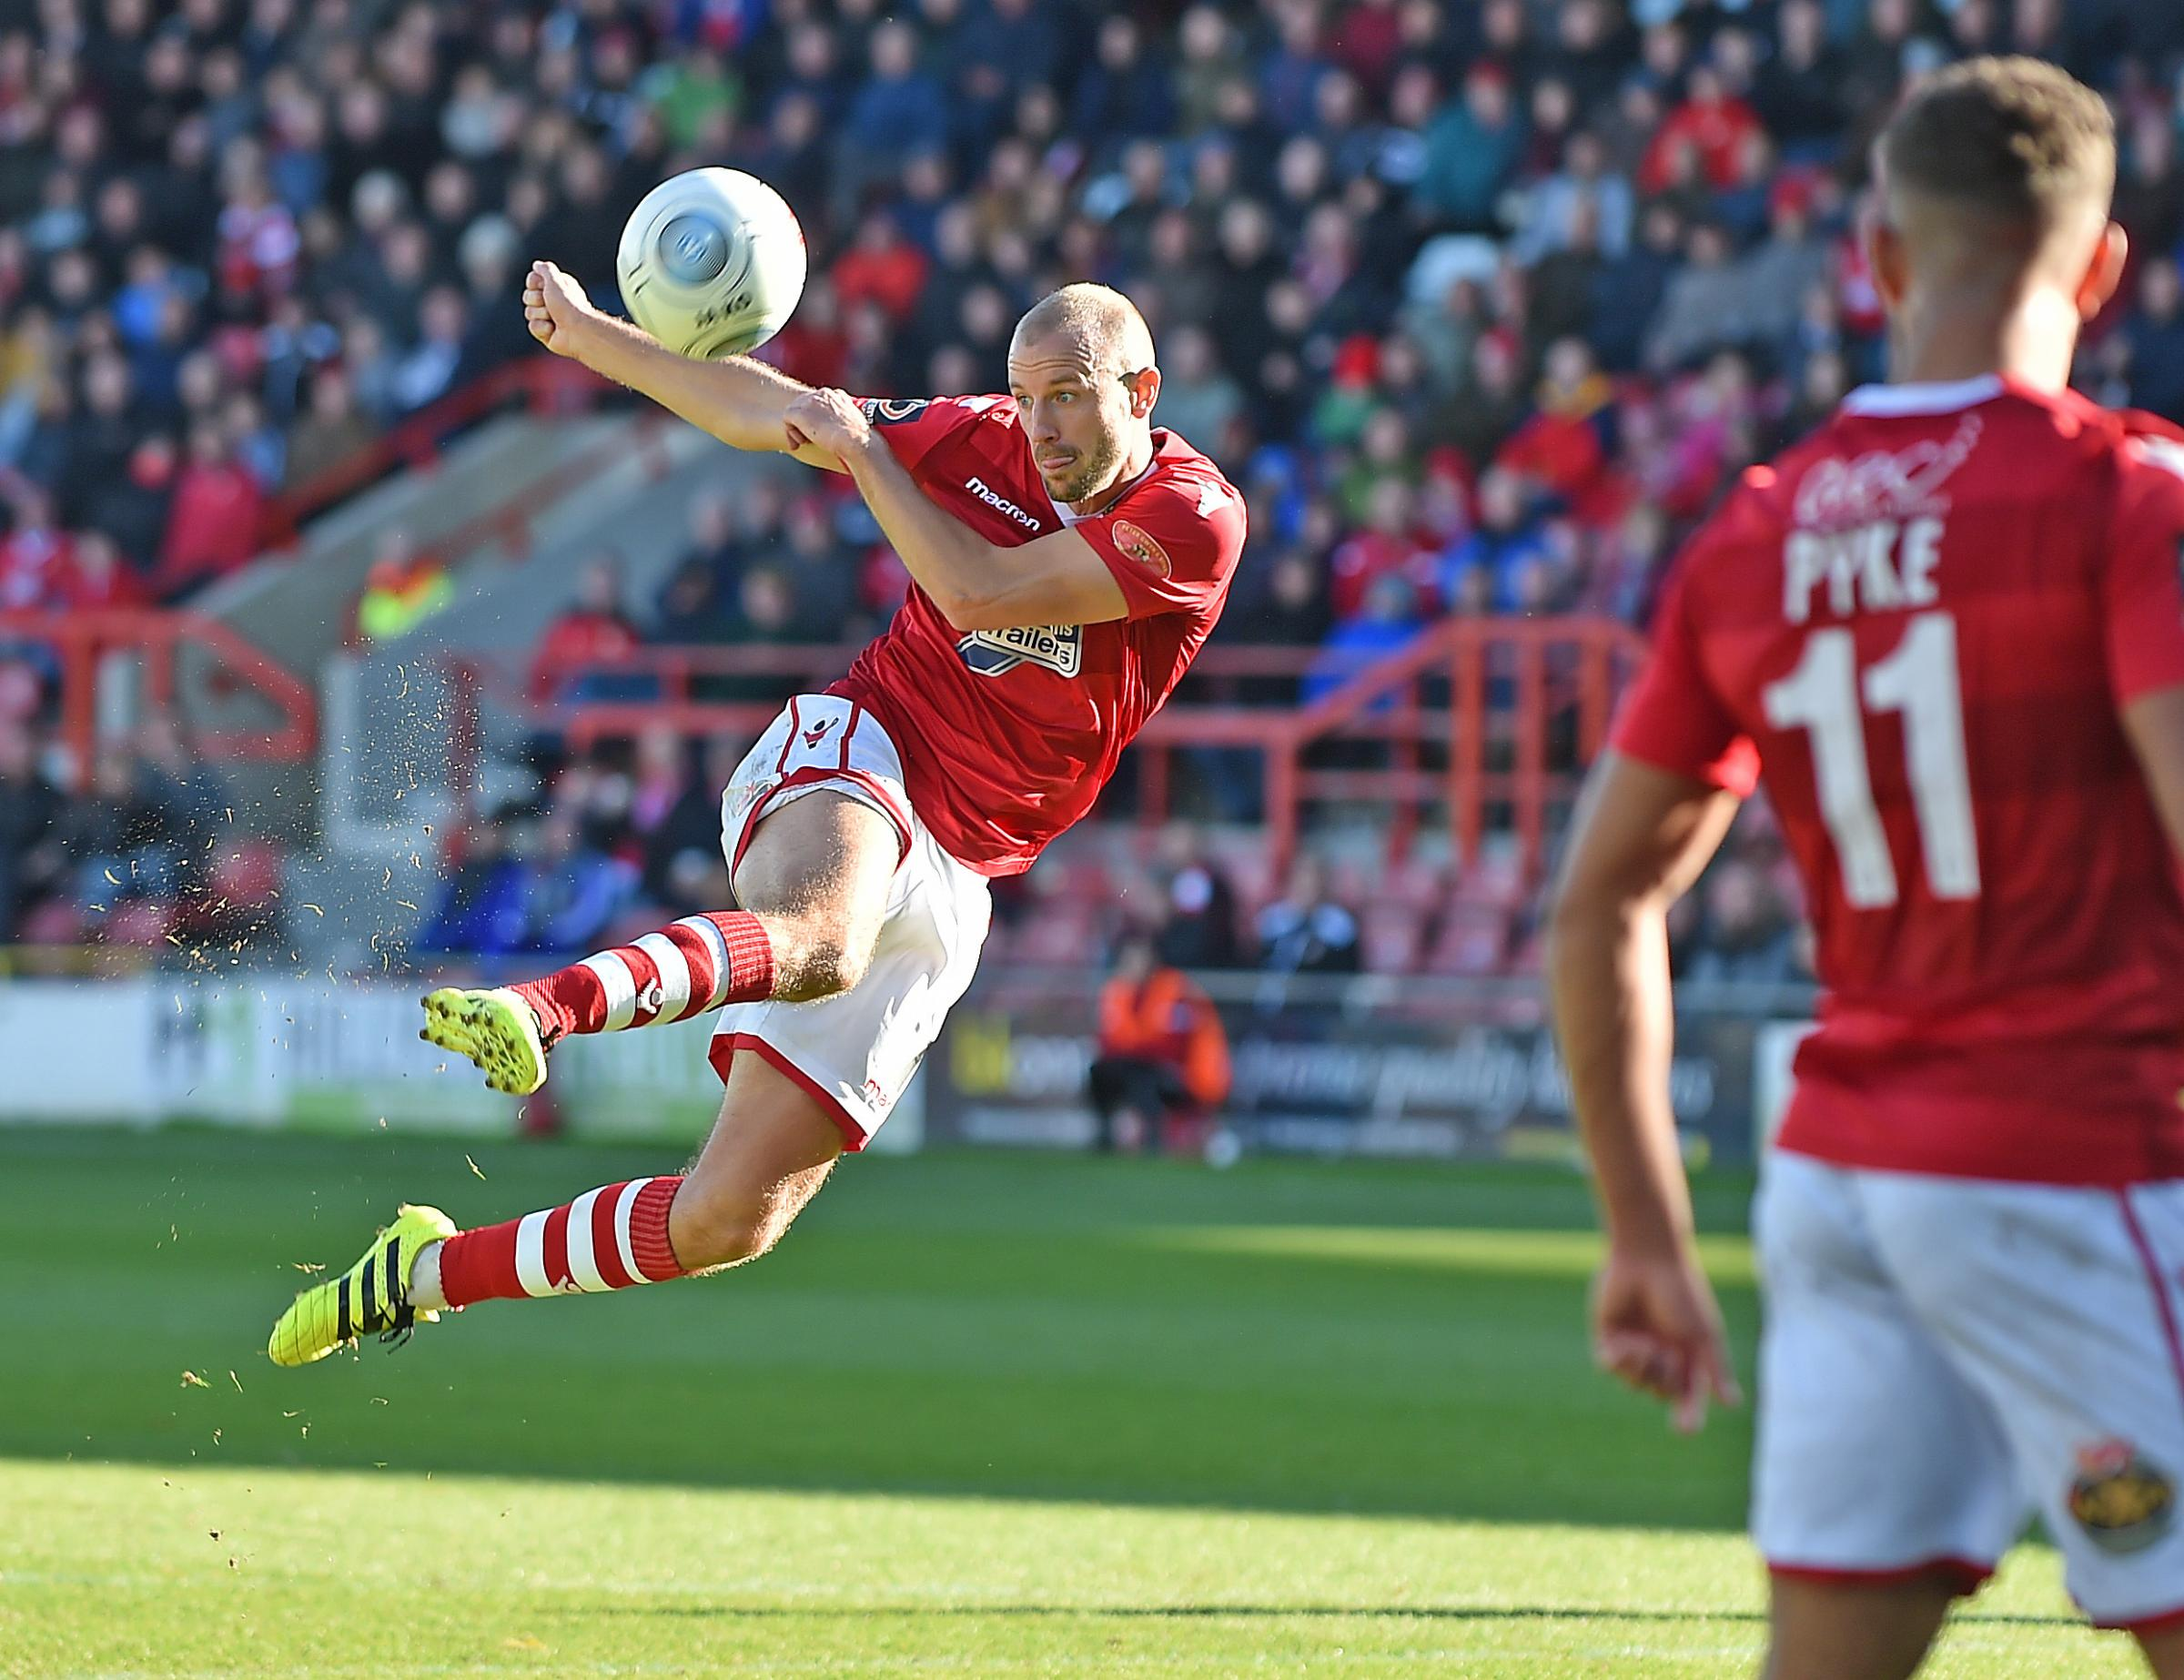 Copyright Pic by Andrew Price/View Finder Pictures-Chester 07774611778.Picture taken 061018.  Caption: Wrexham FC v CPD Havant & Waterlooville FC. Wrexhams Luke Summerfield with a spectacular attempt on goal..